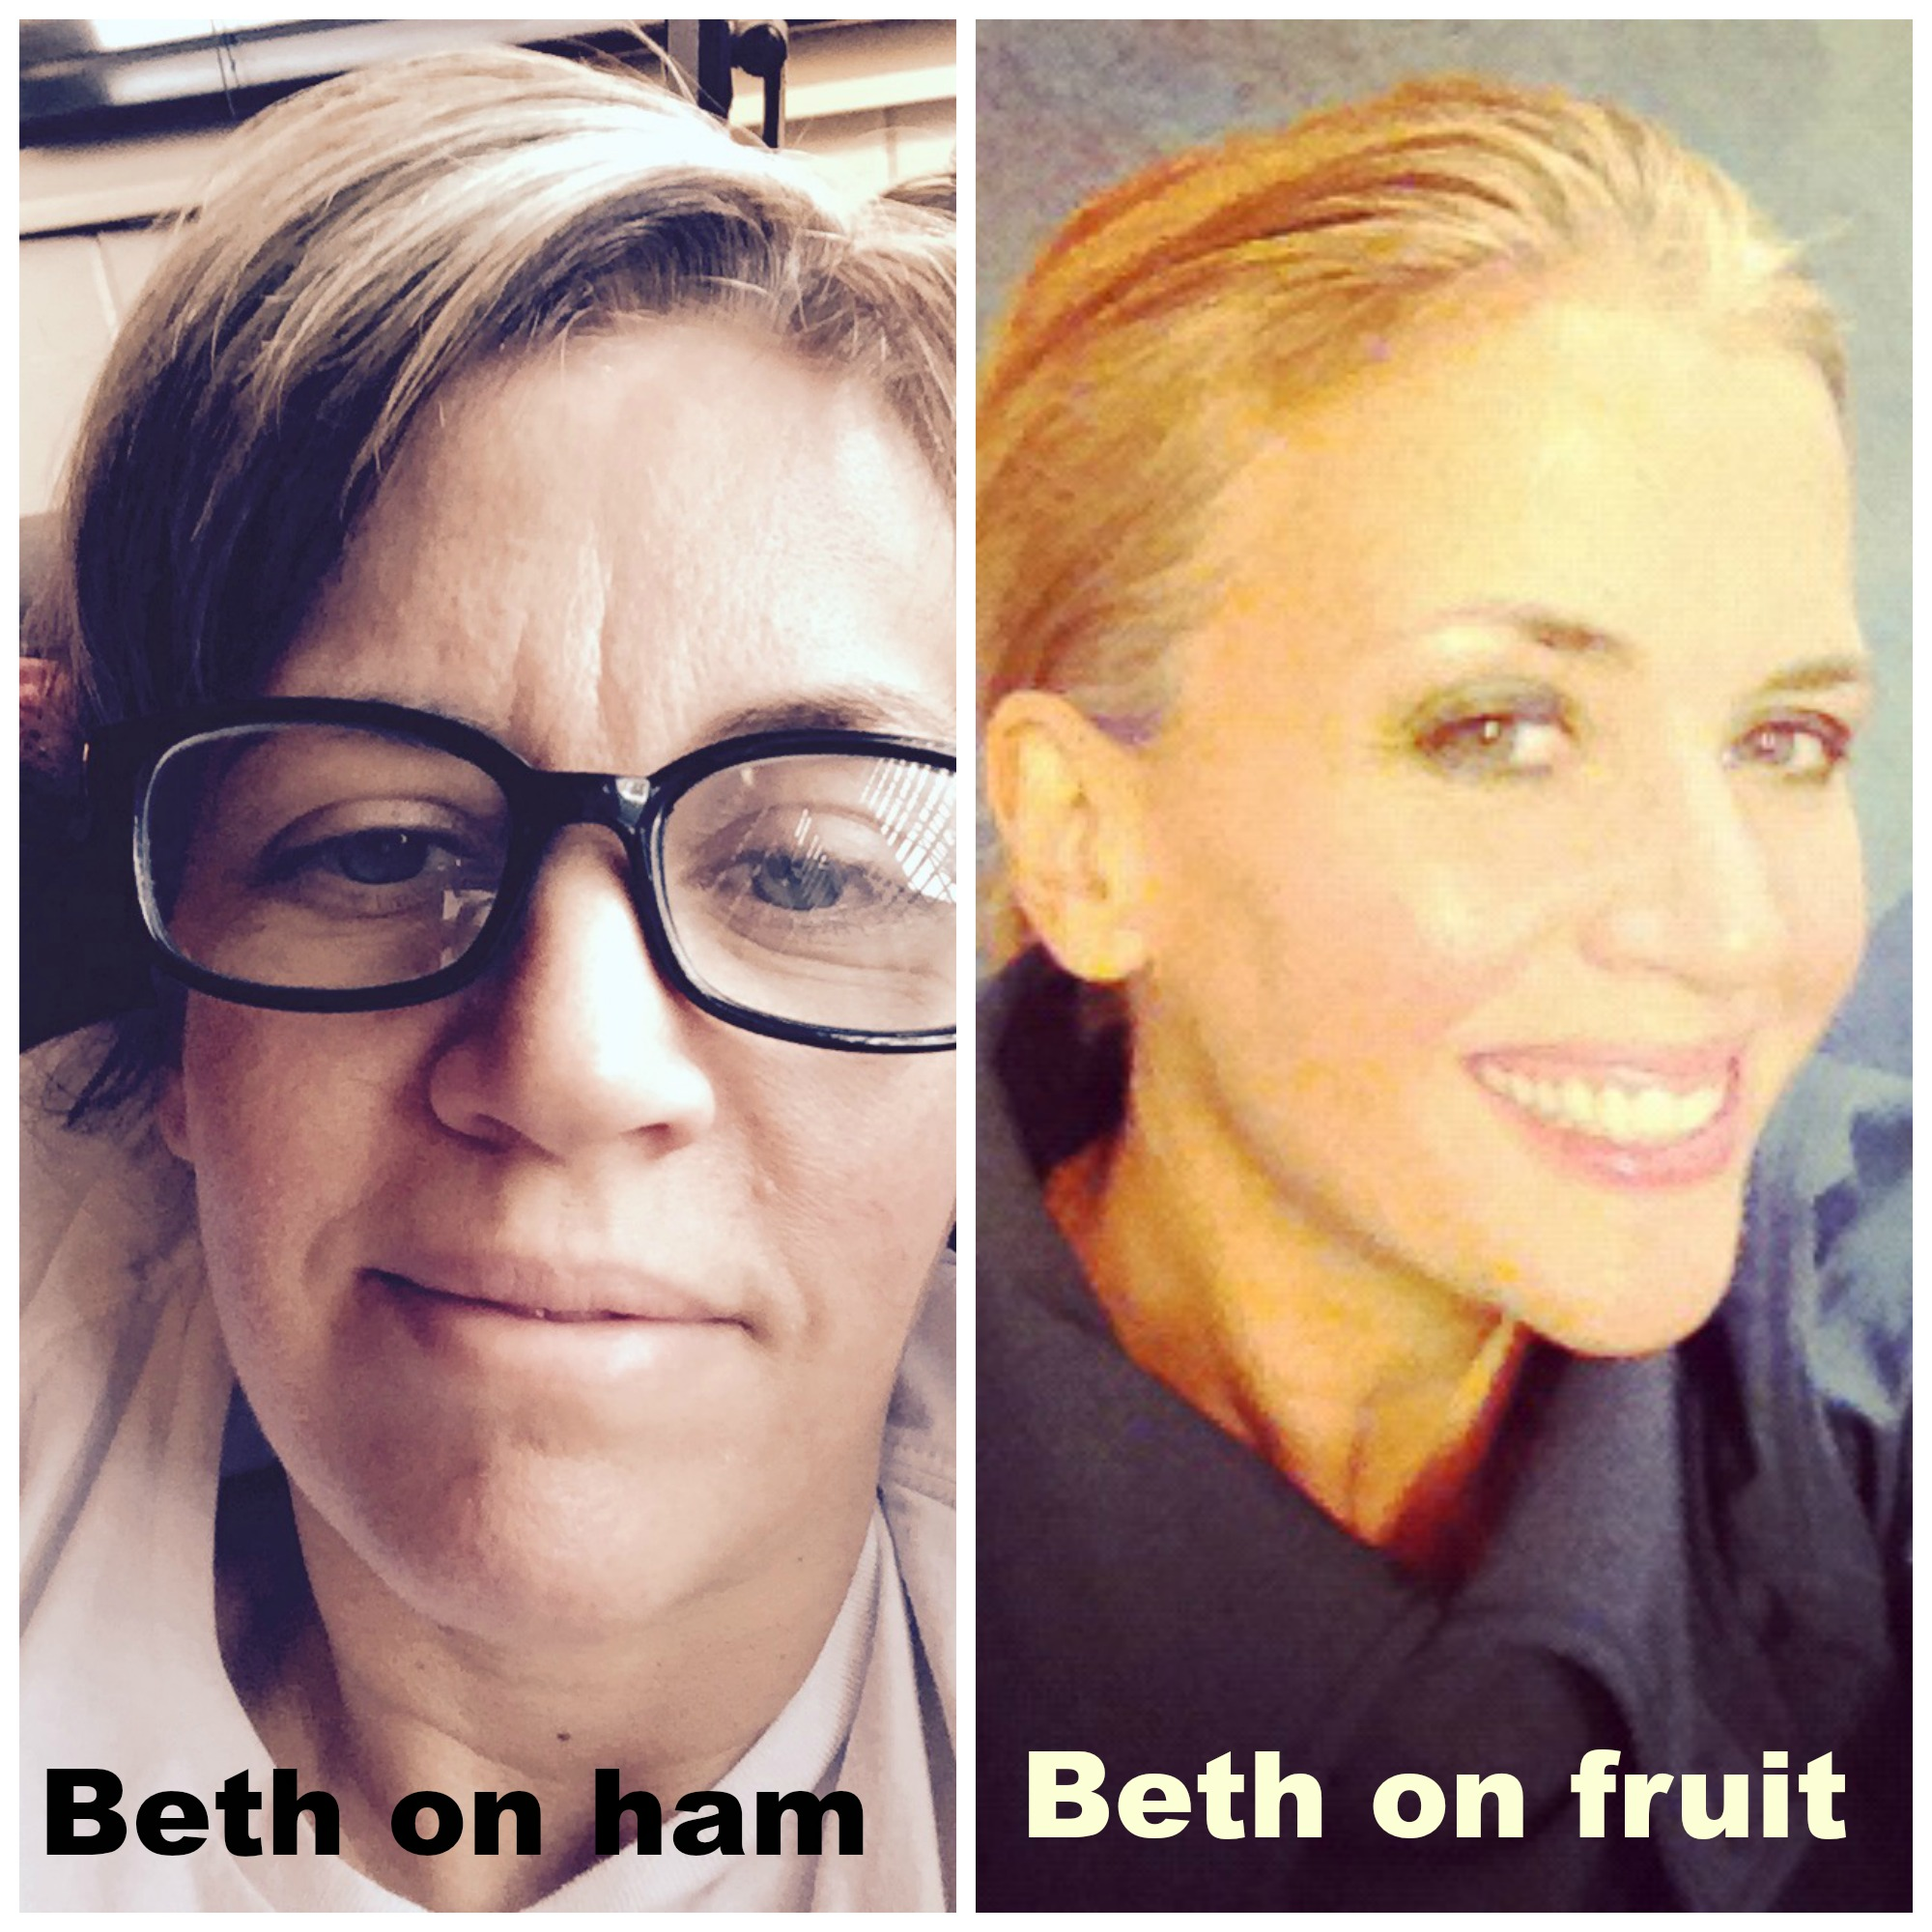 Beth Meme Ham Vs Fruit